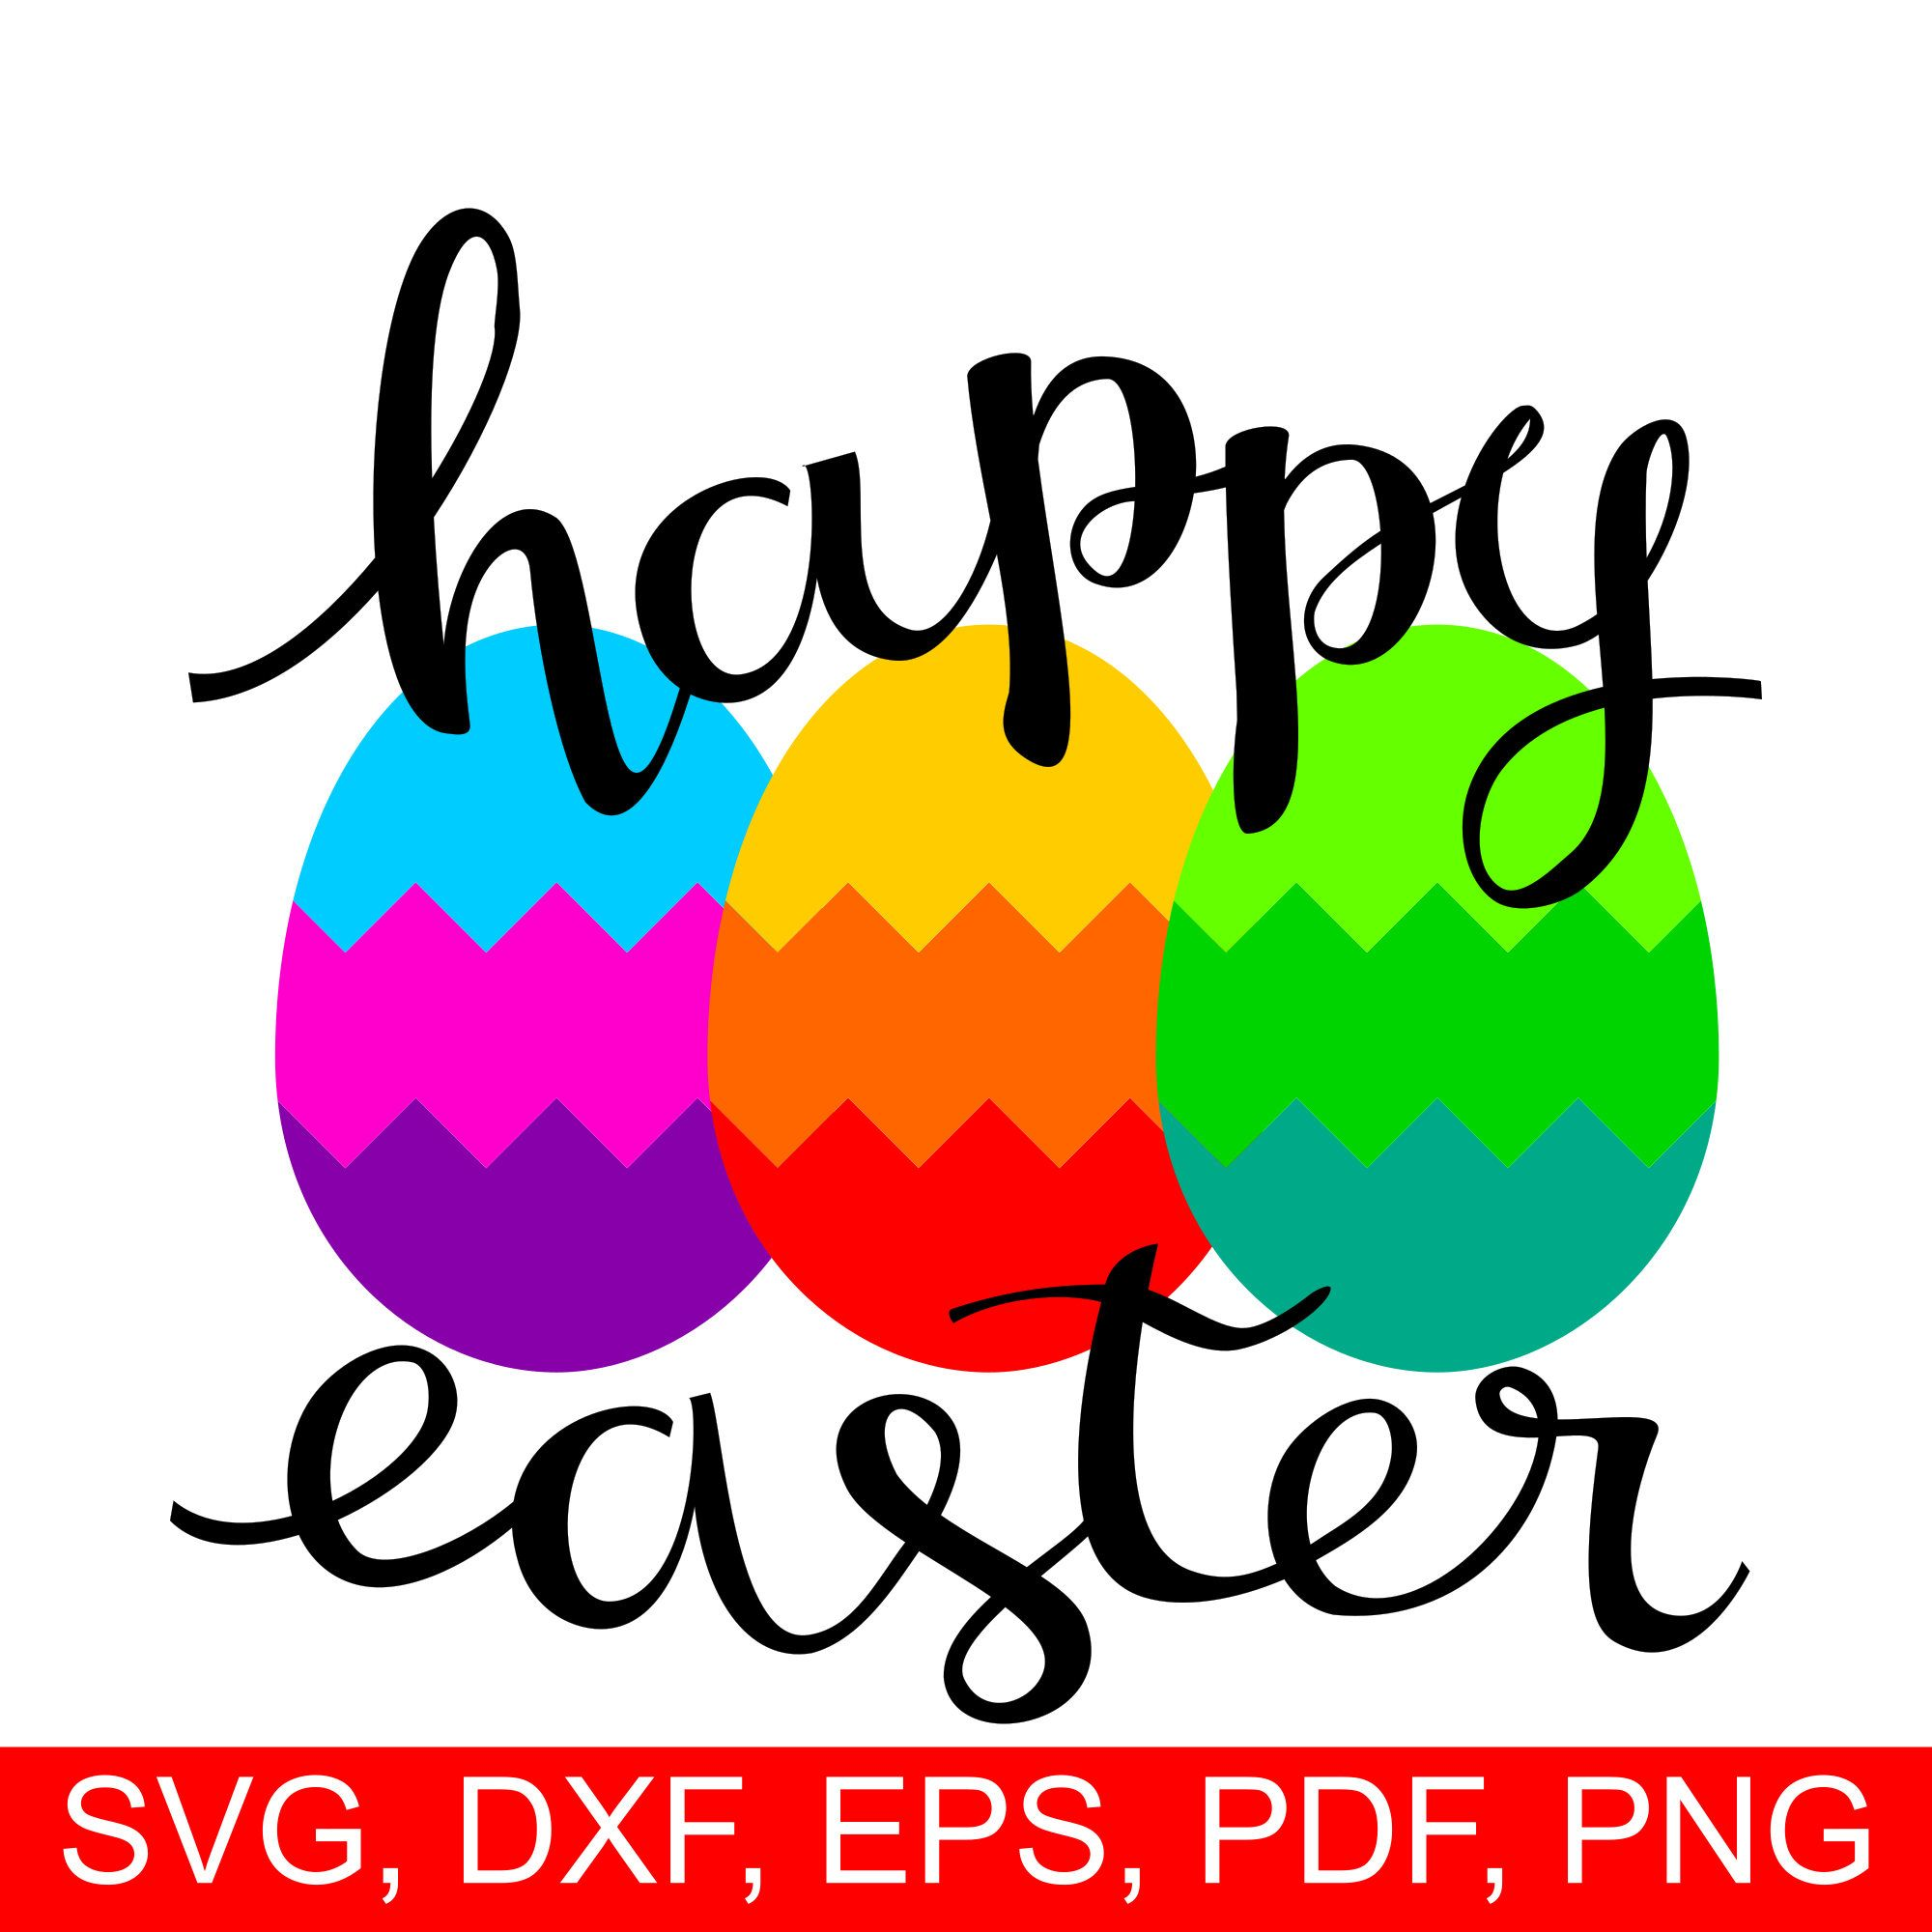 Happy easter eggs svg file for cricut and silhouette